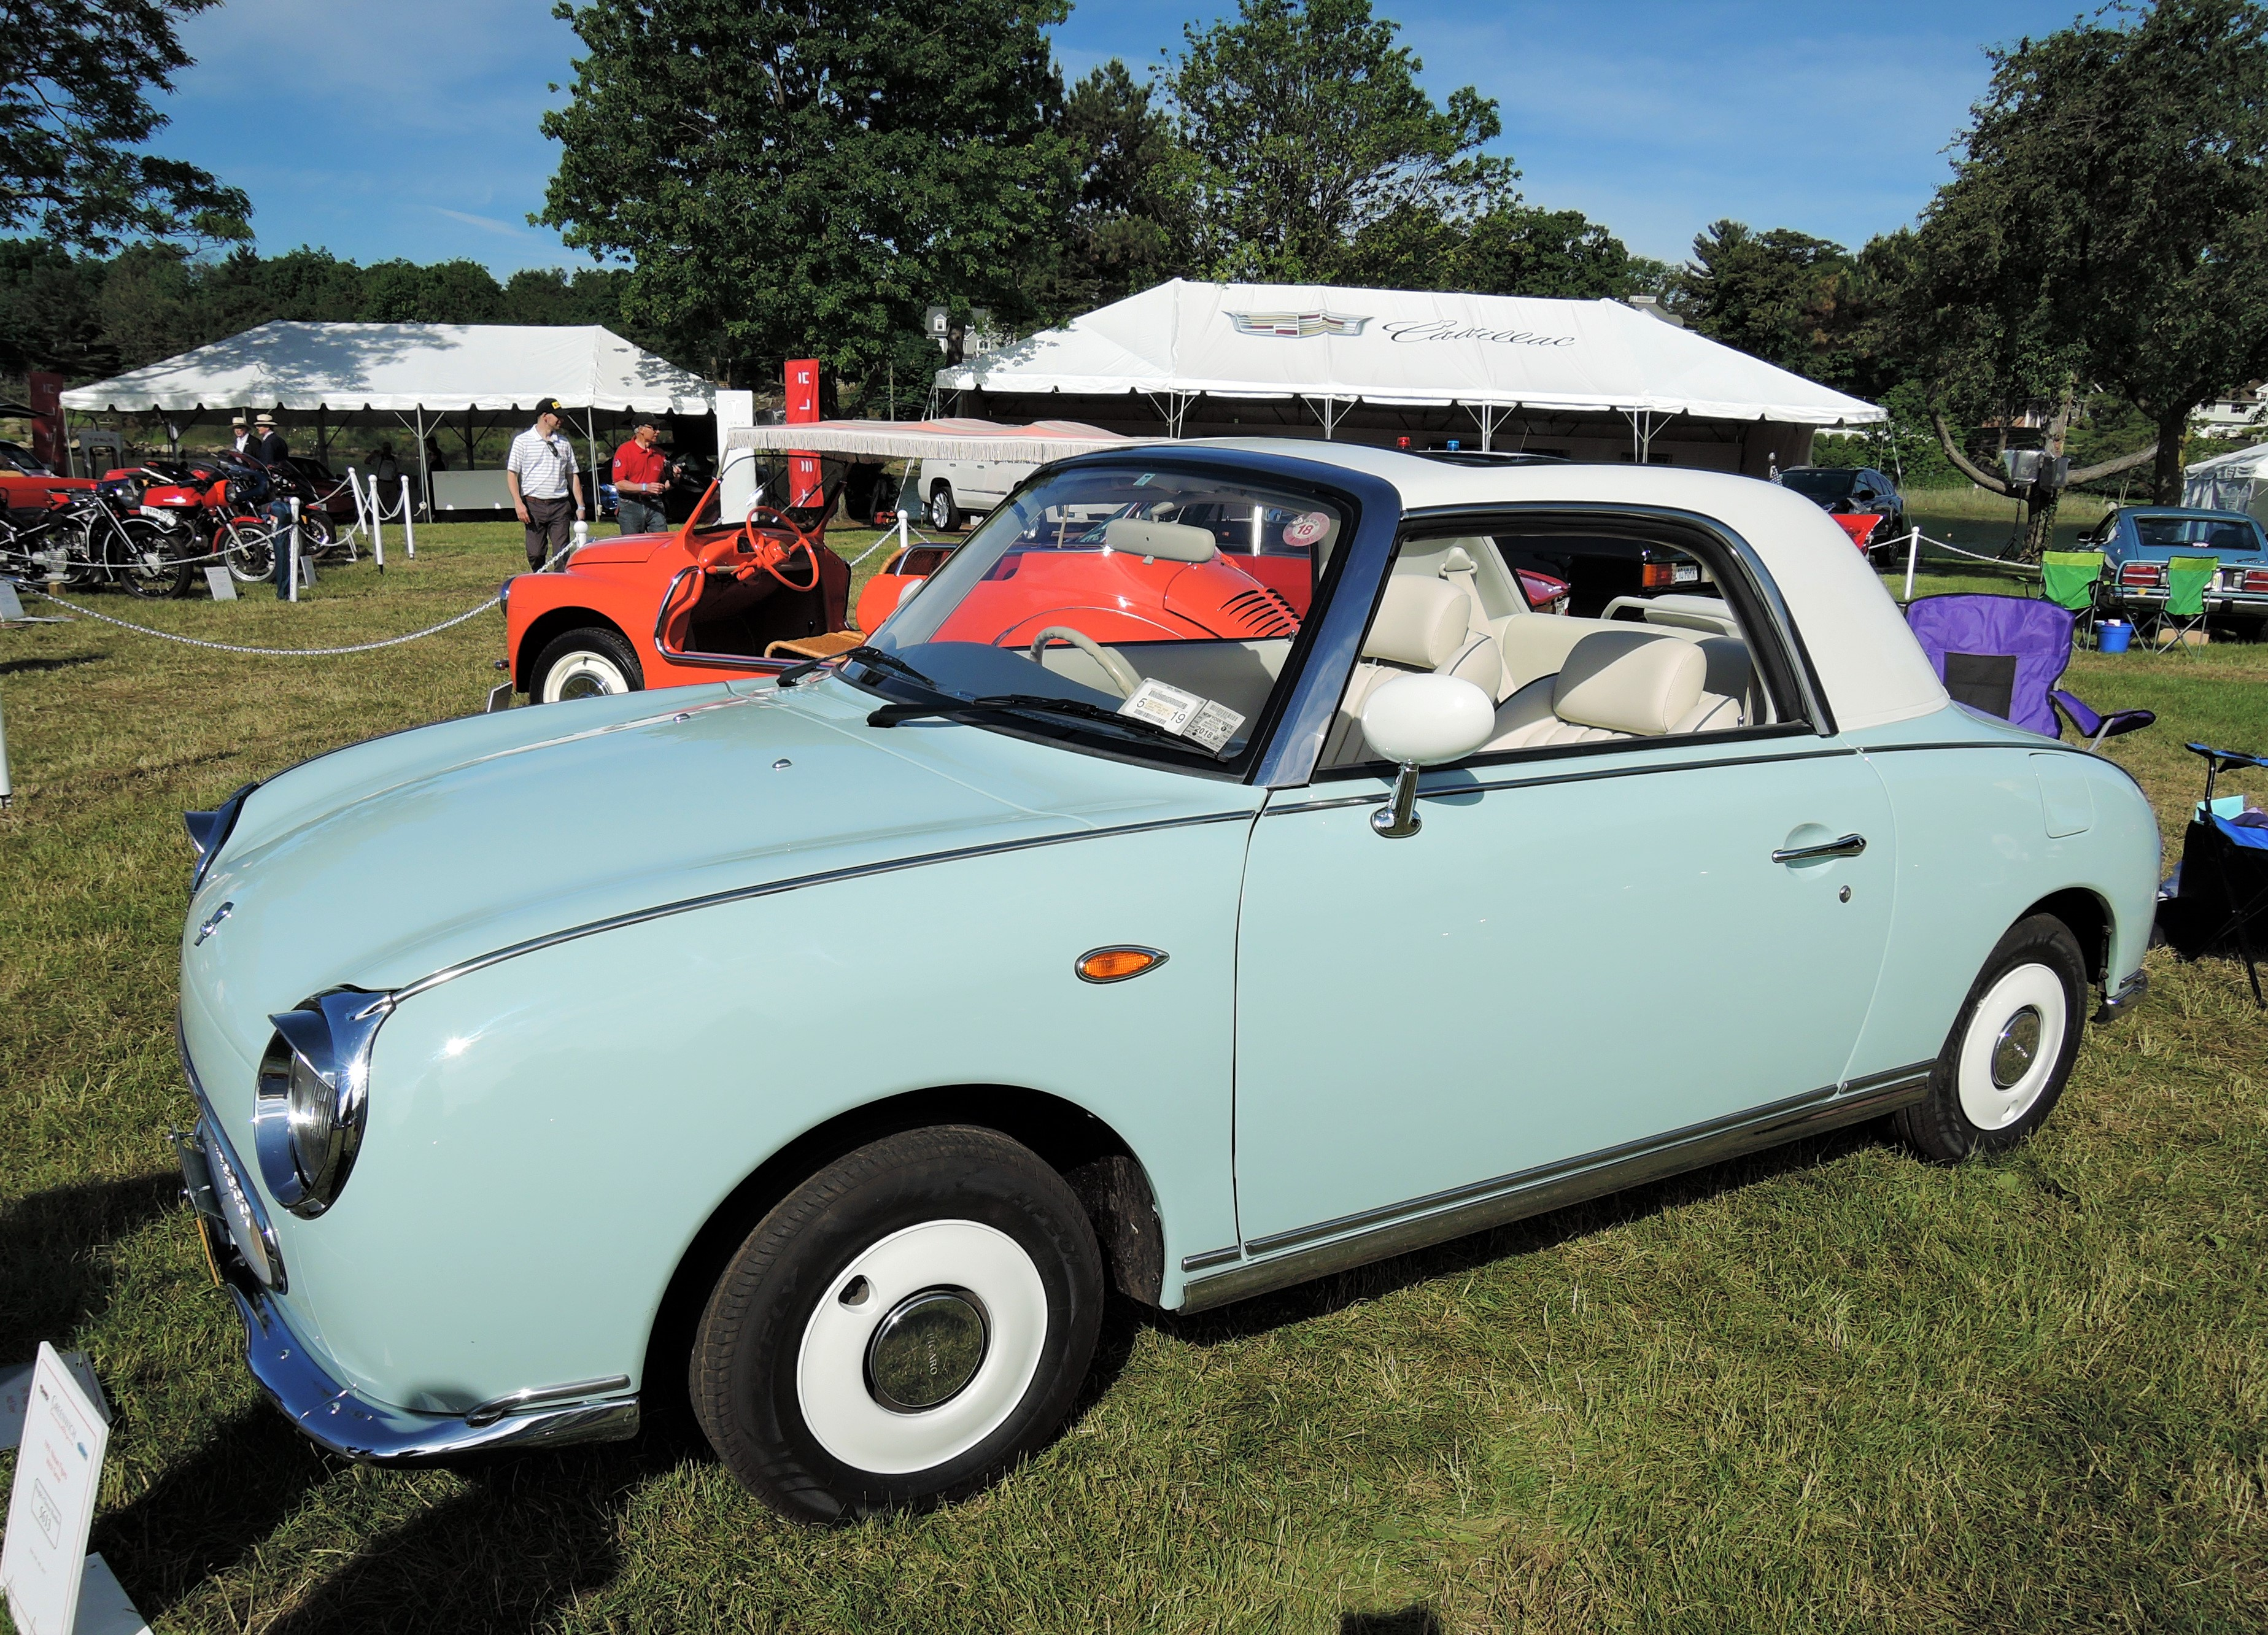 mint green 1991 Nissan Figaro Convertible - Greenwich Concours d'Elegance 2017